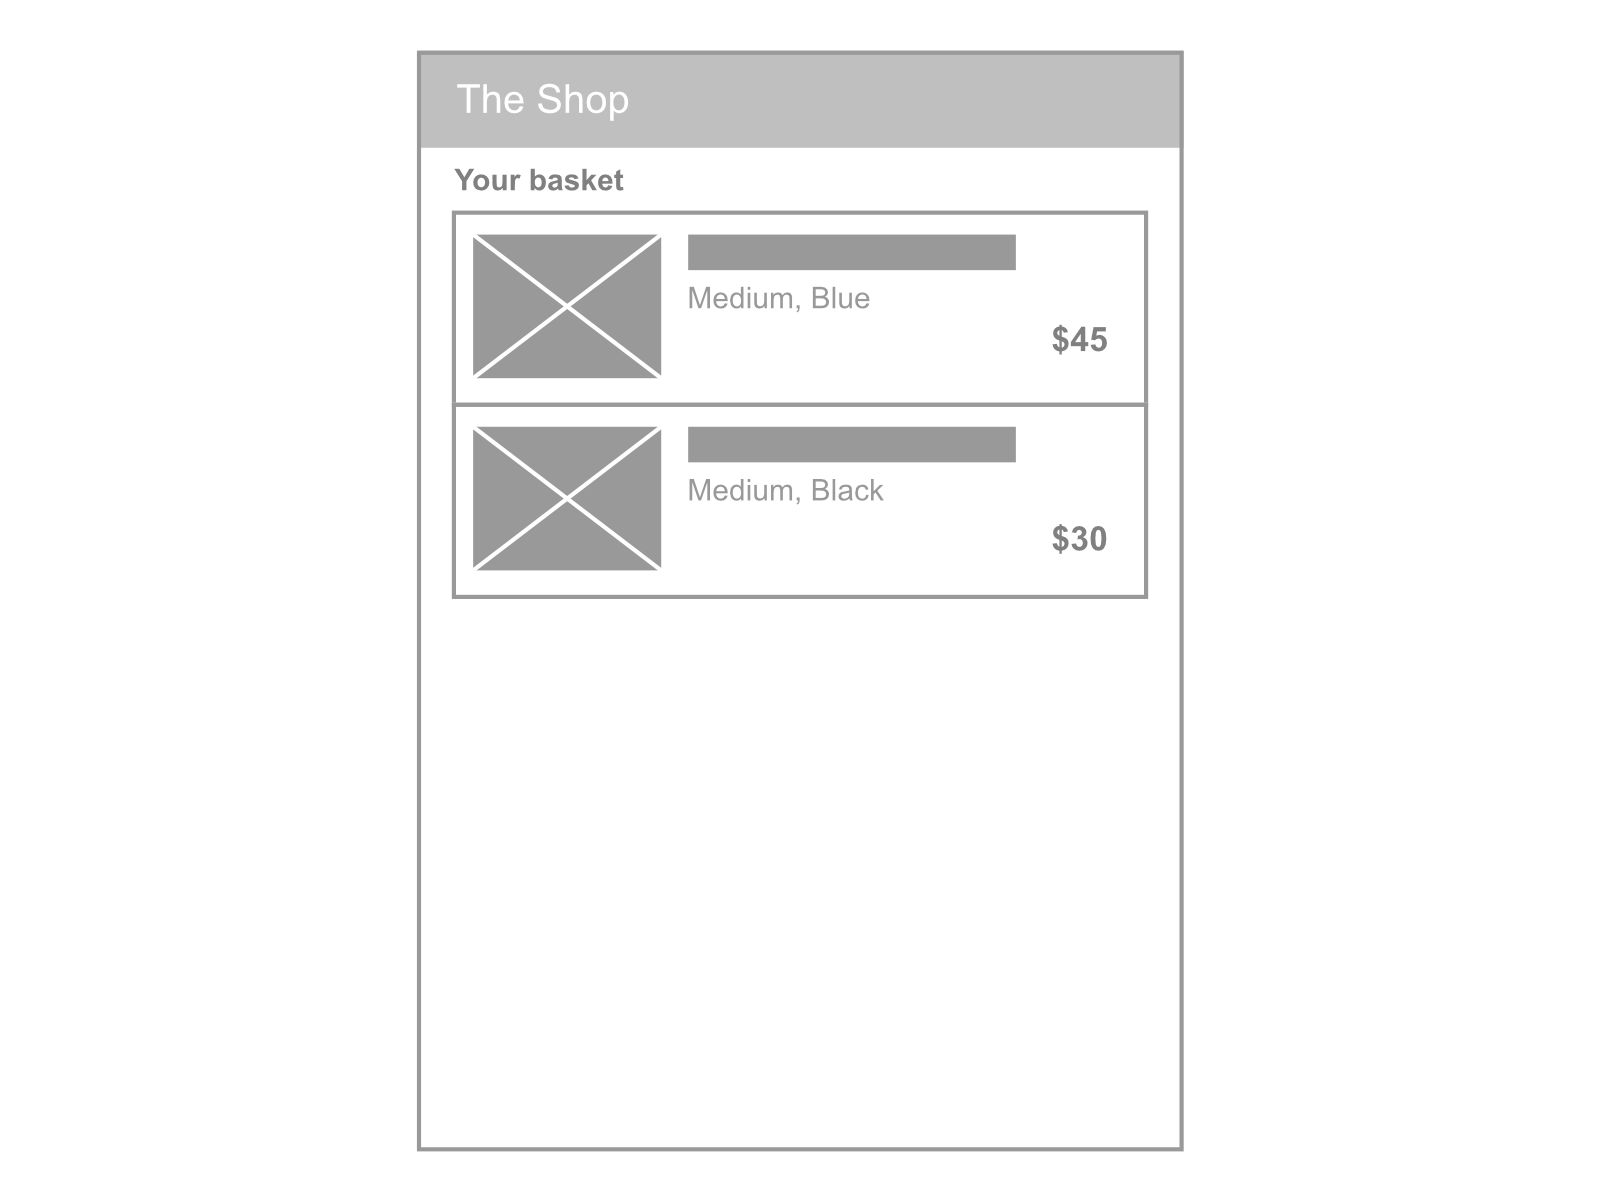 Shopping basket UX items